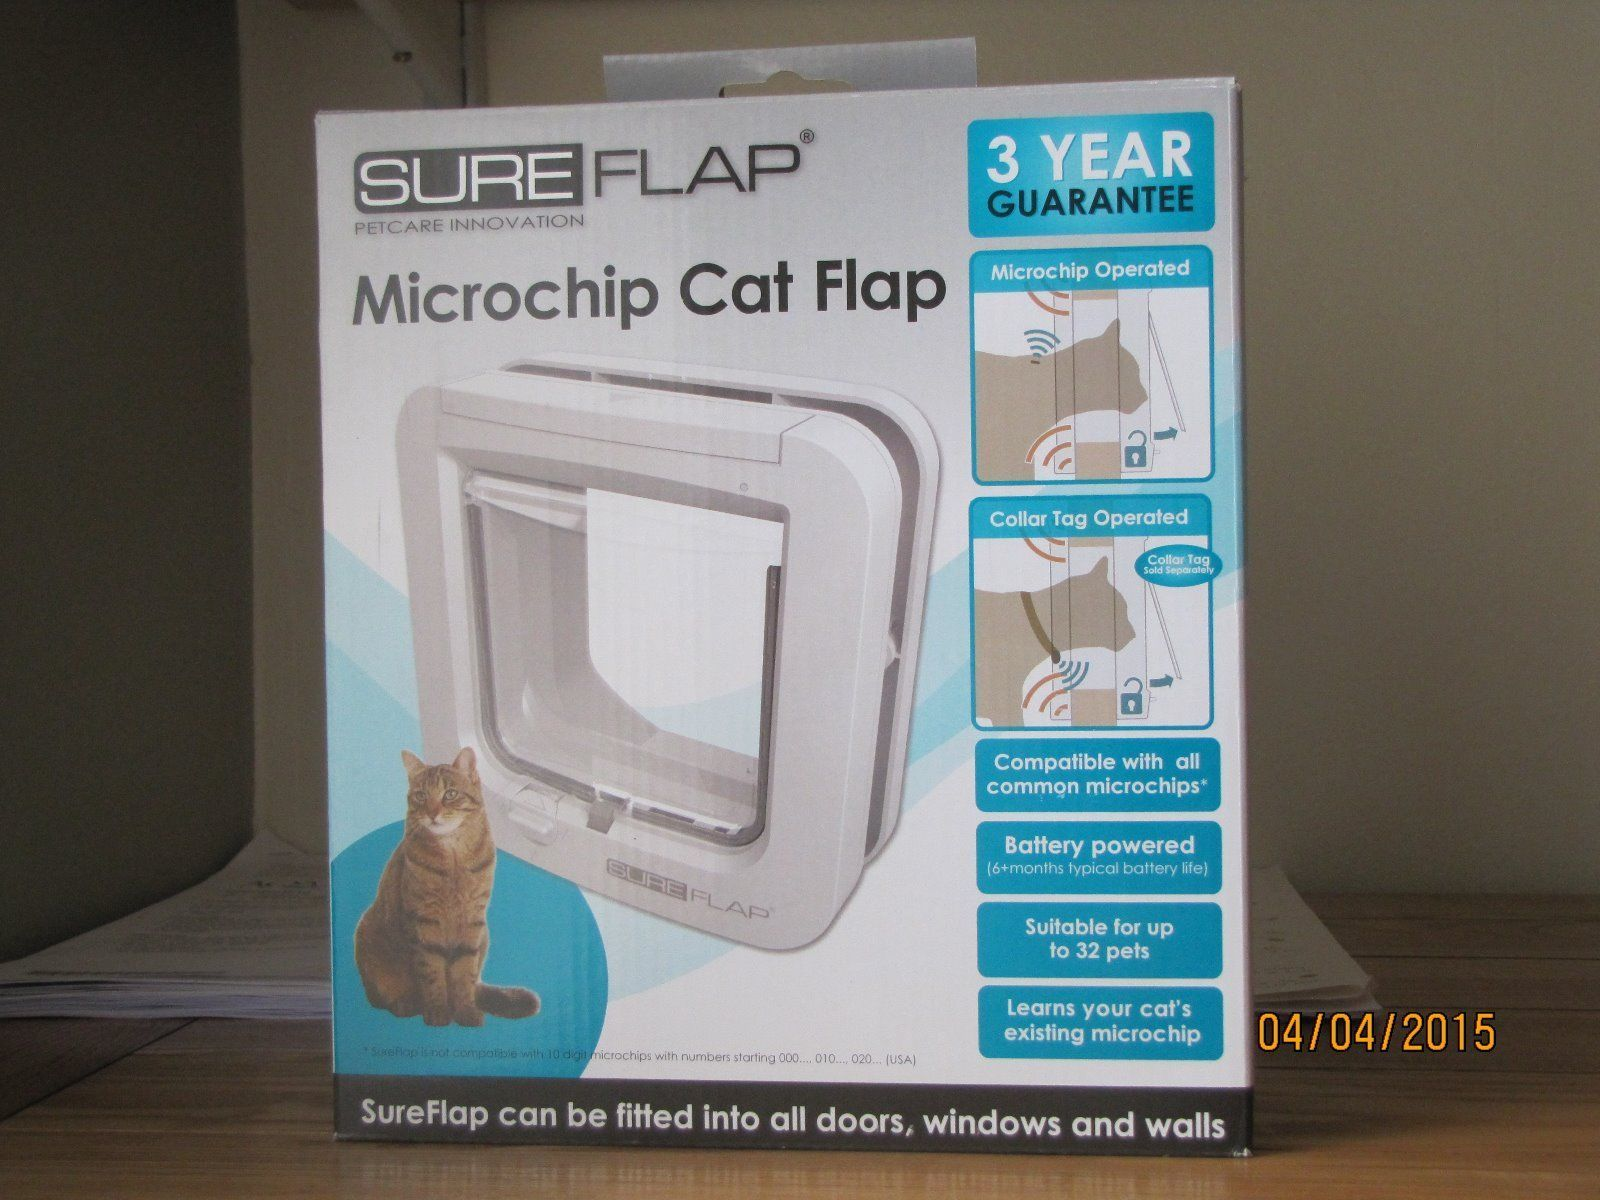 microchip manual locking needs adaptor for window placement rh pinterest com sureflap microchip cat flap user manual sureflap microchip cat flap instruction manual